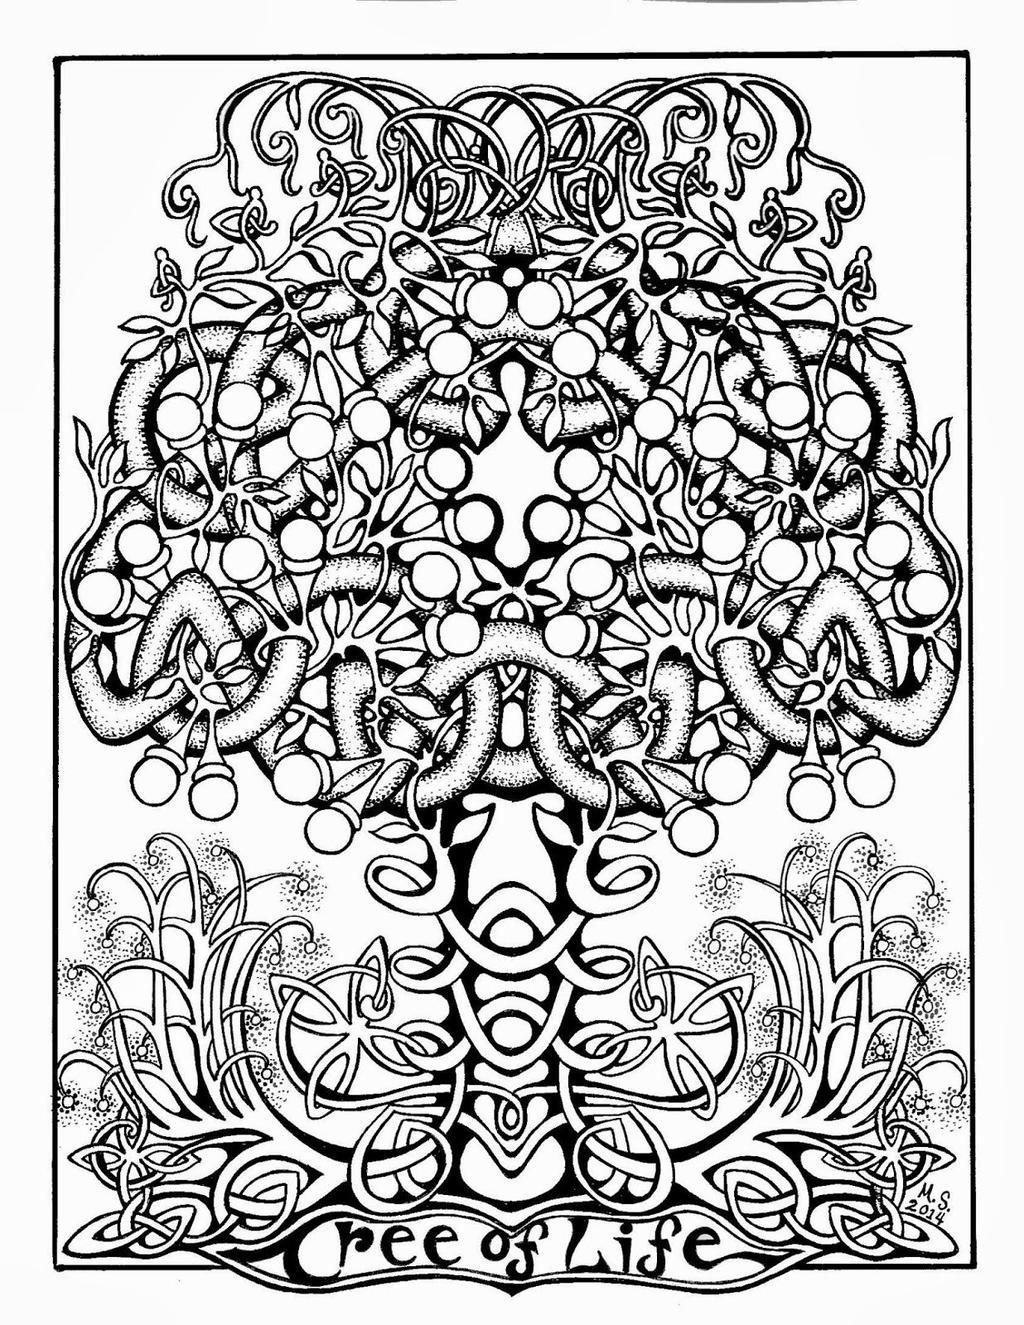 Book Kells Coloring Pages for Boys